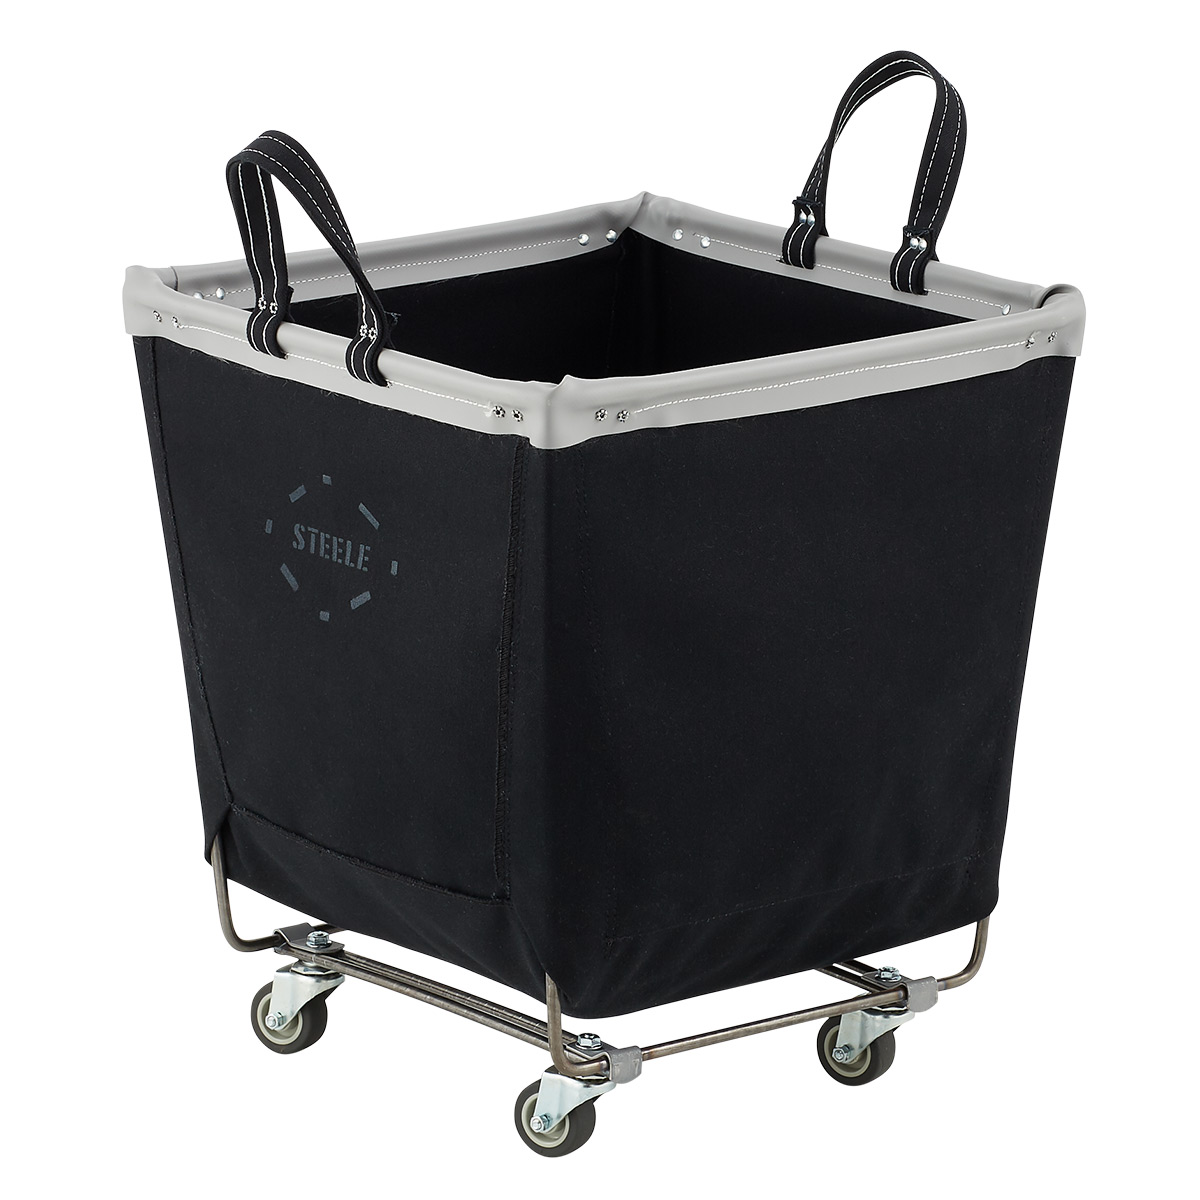 Steele Canvas Black Laundry Cart